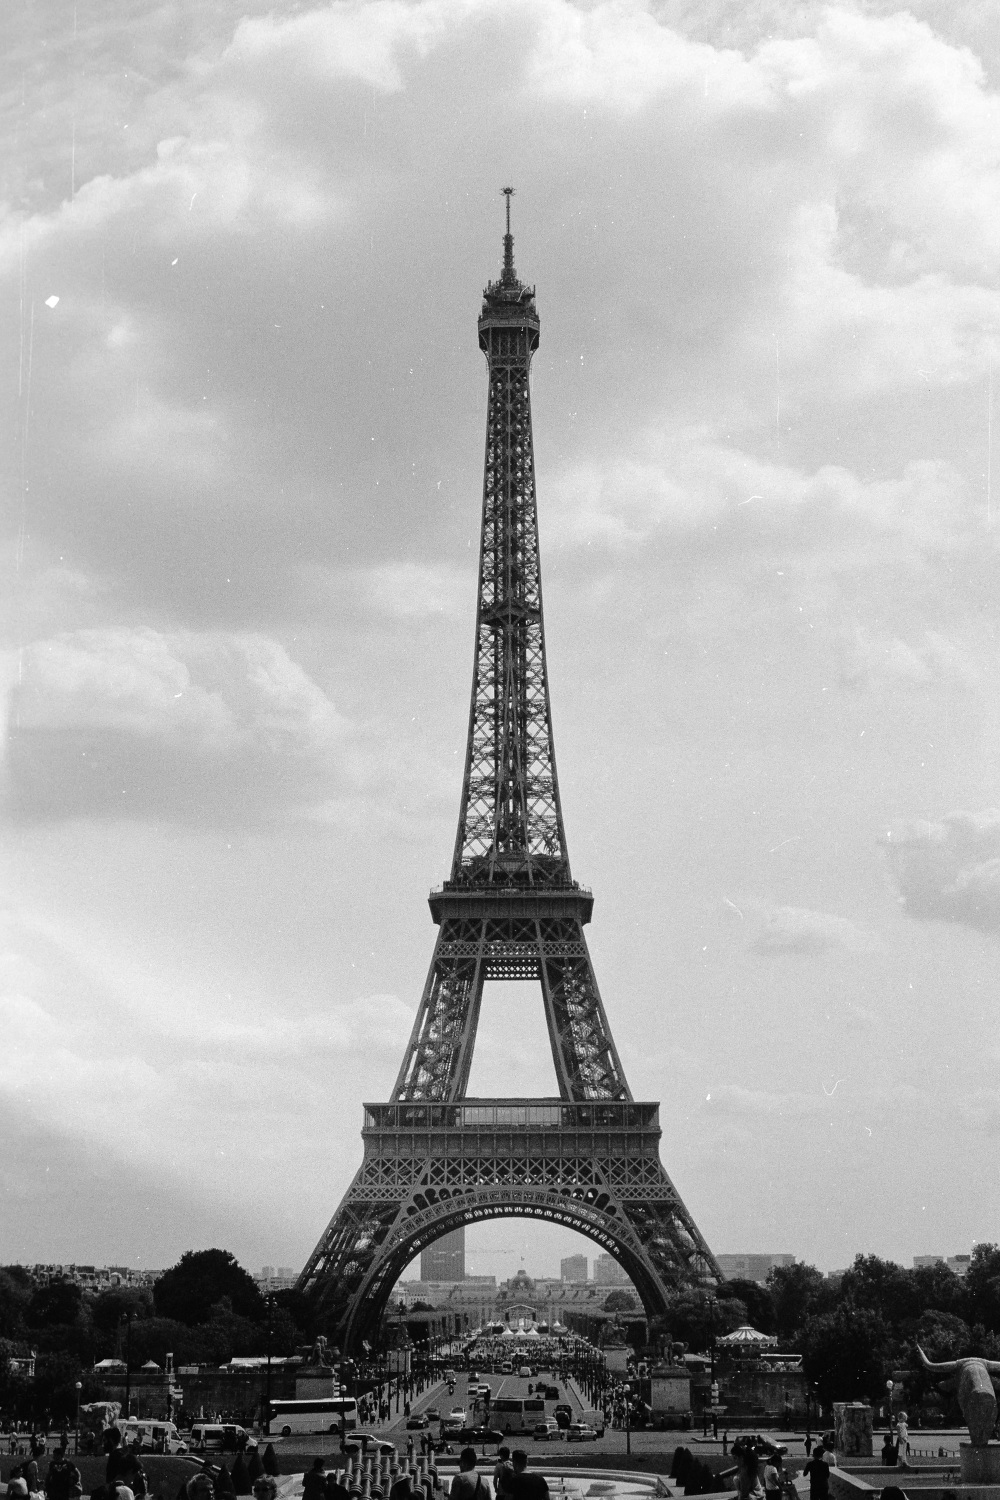 paris france tour heiffel film bw ilford dilmisnotdead pentax photo de